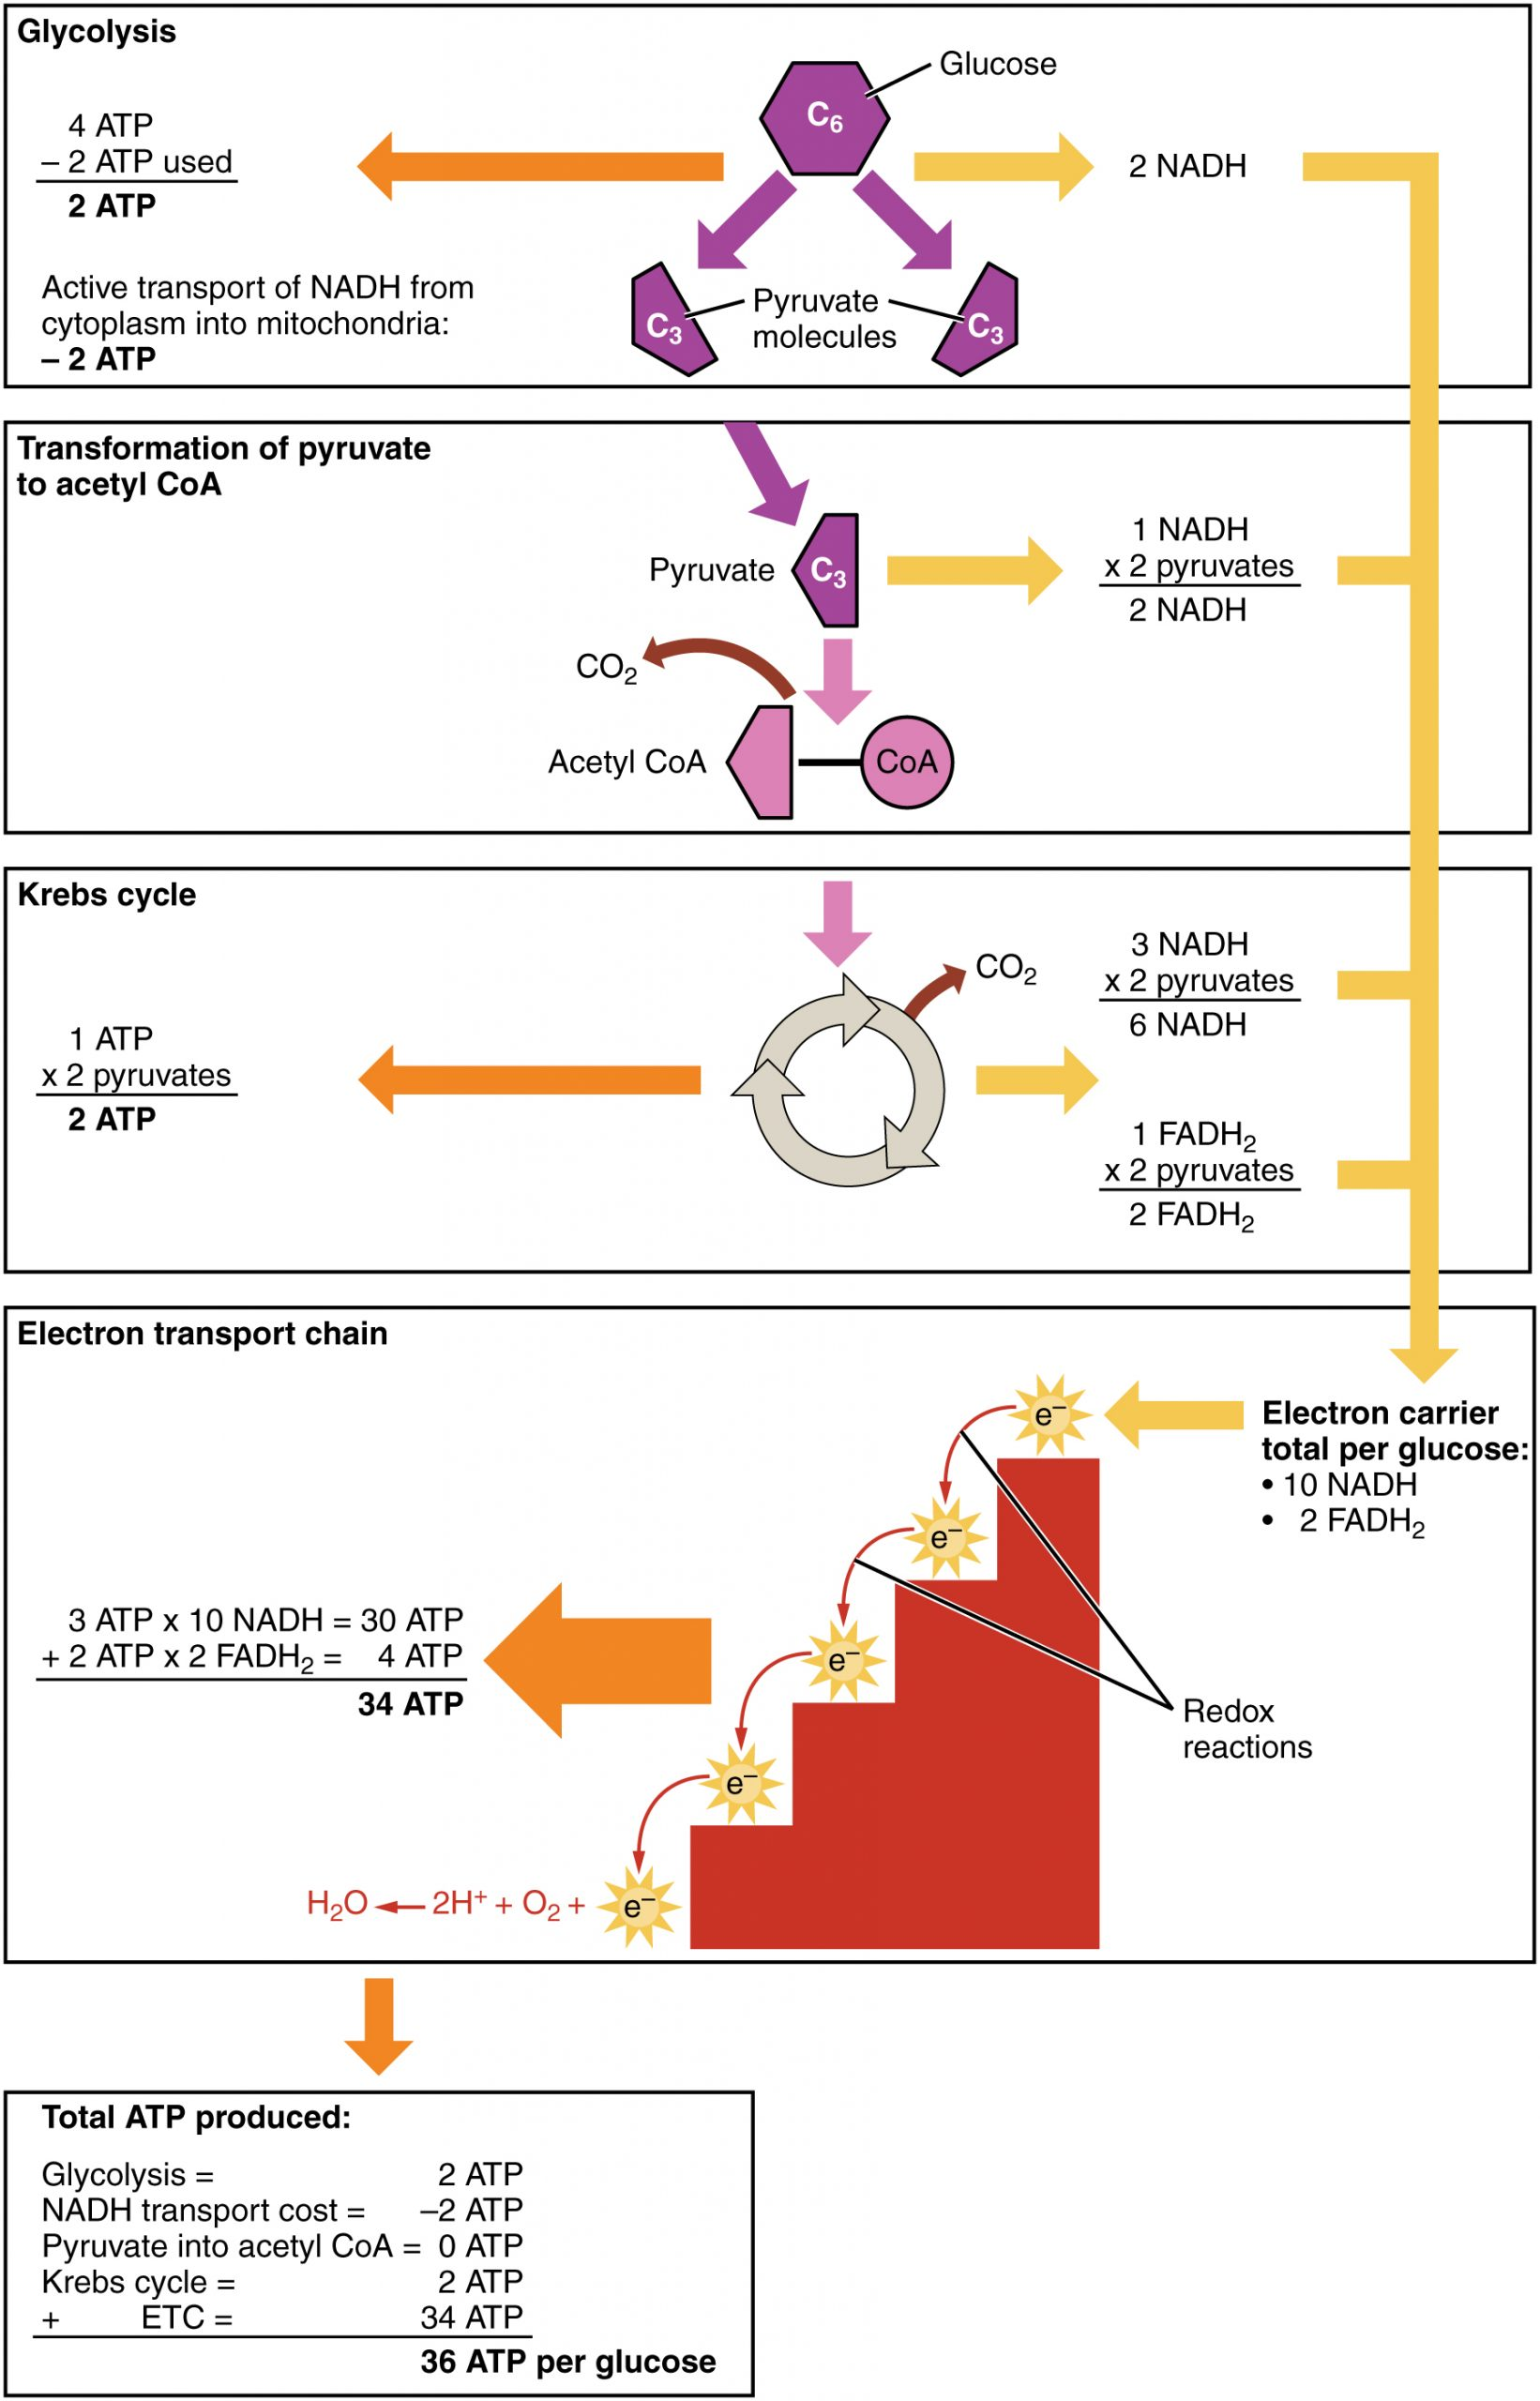 Image shows a diagram of the four stages in cellular respiration: Glycolysis, transition reaction, Kreb's cycle, and the electron transport system.